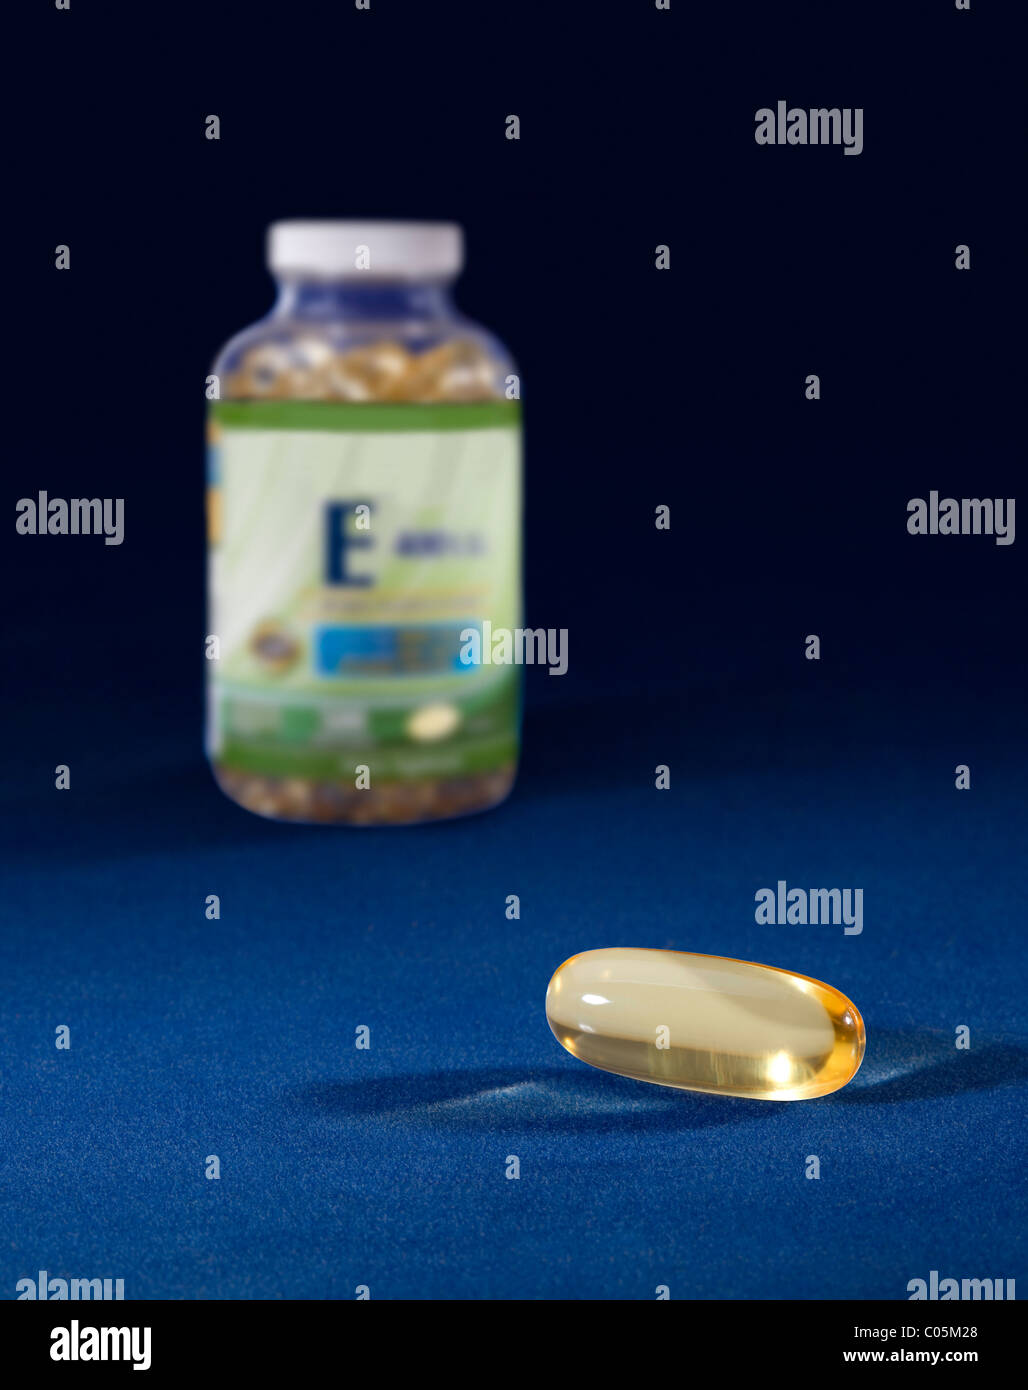 A nutritional supplement vitamin E capsule. - Stock Image